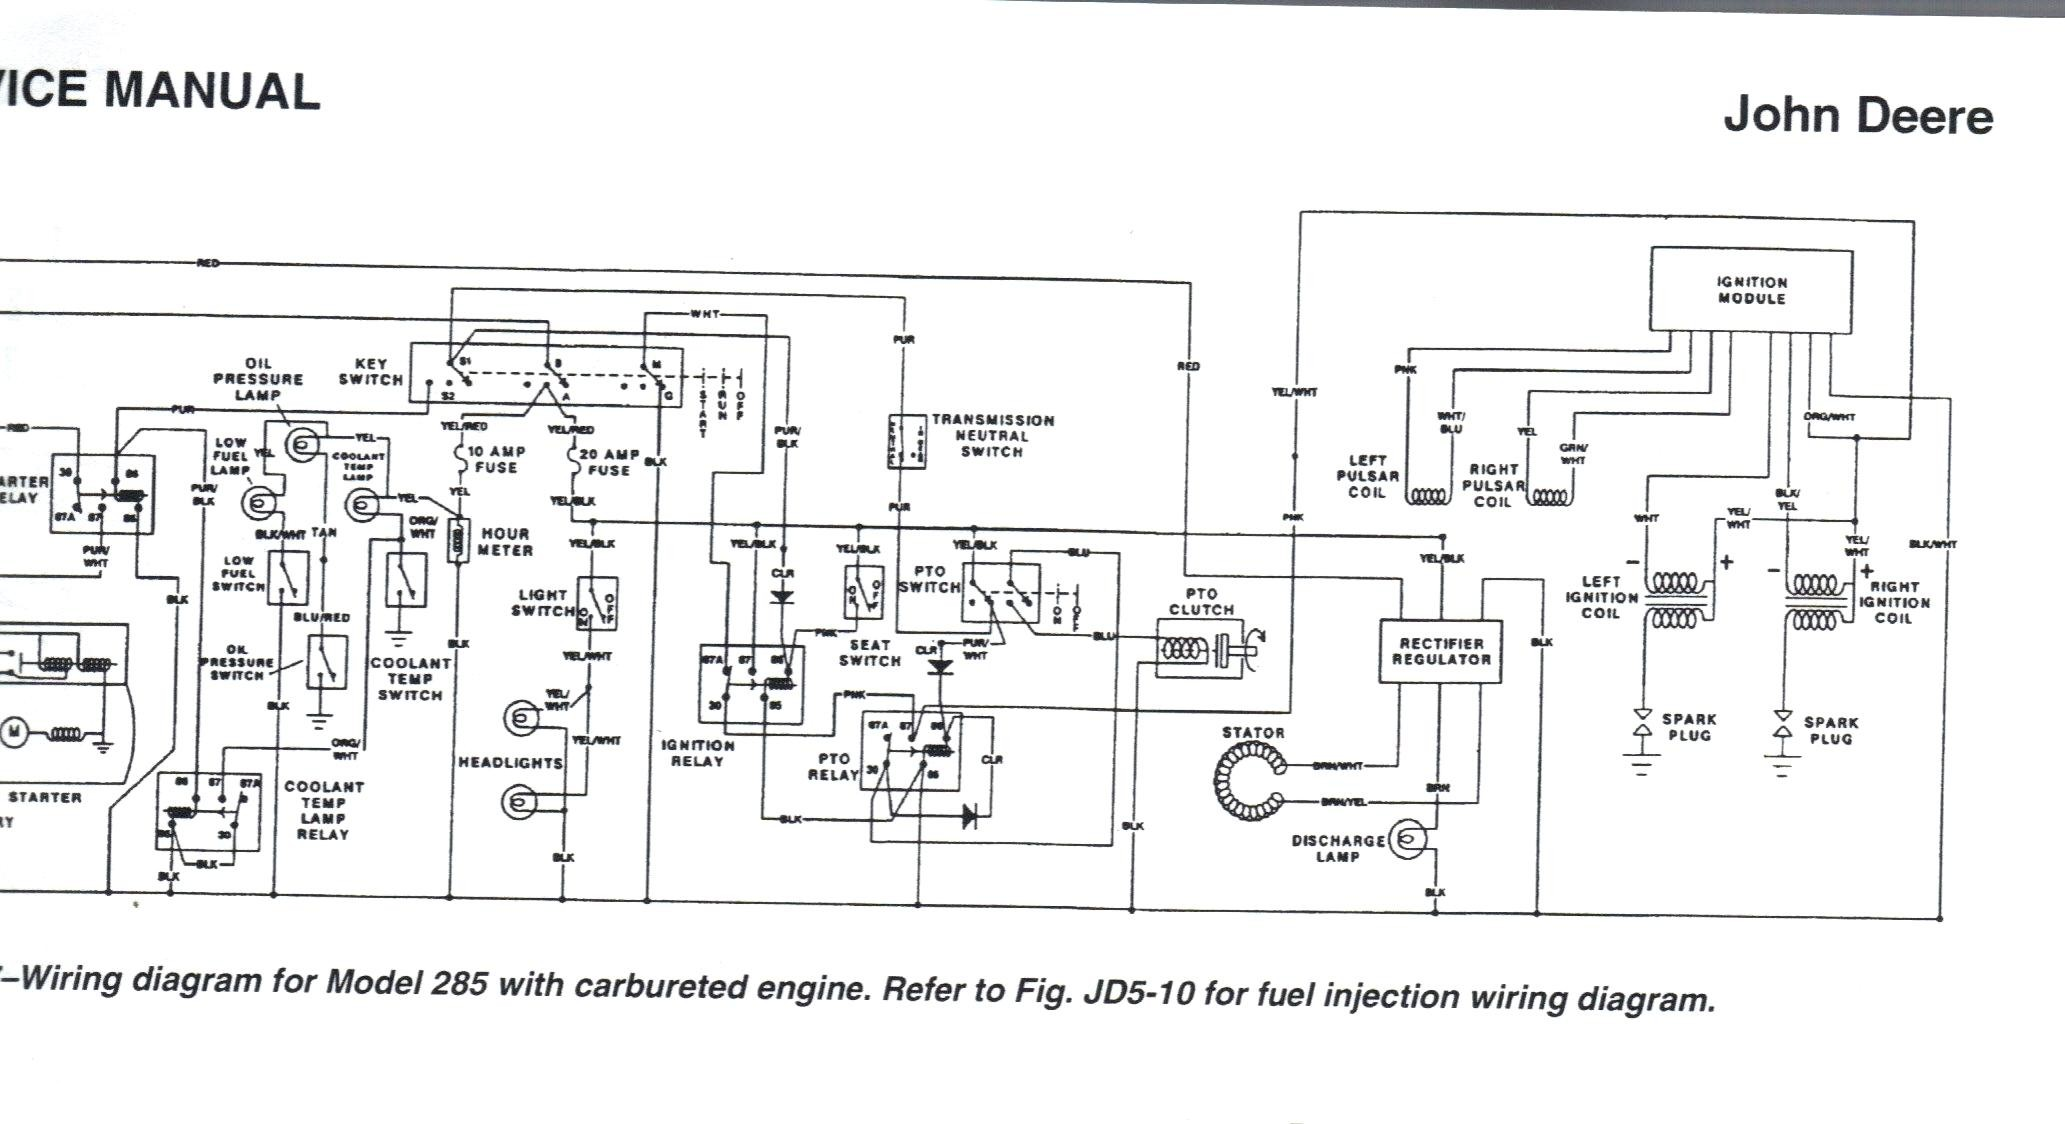 wiring diagram for john deere 110 lawn tractor wiring diagram john deere wiring diagrams free john deere 317 ignition diagram #15